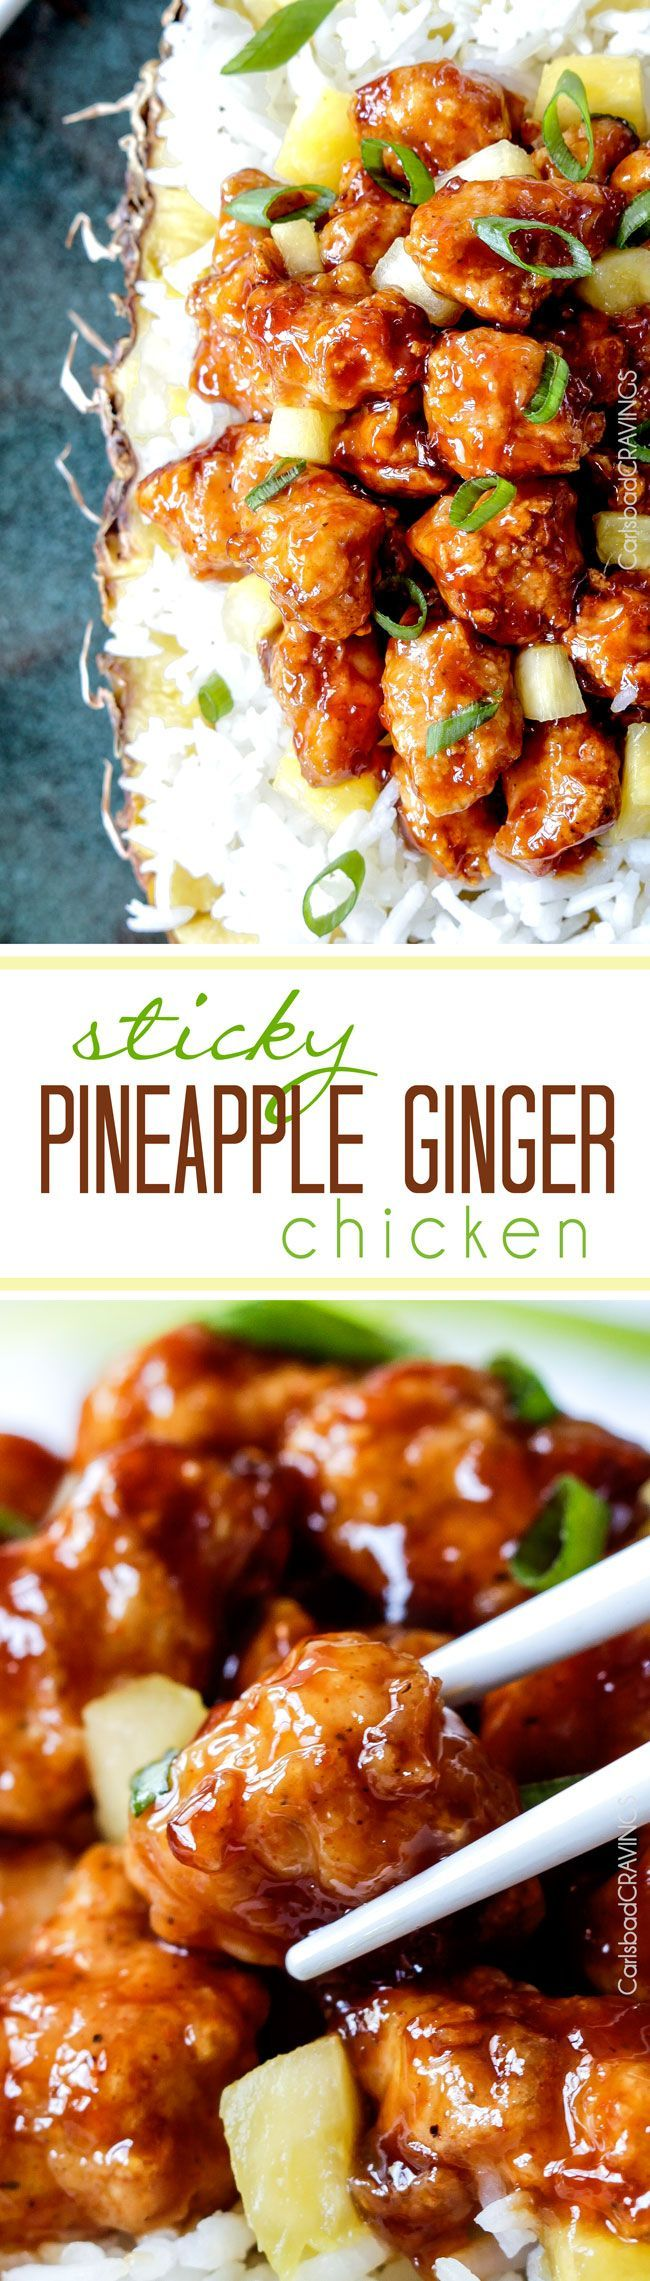 Baked Pineapple Ginger Chicken - Smothered in the most crazy delicious sweet pineapple sauce with a ginger Sriracha kick that is WAY better than takeout.